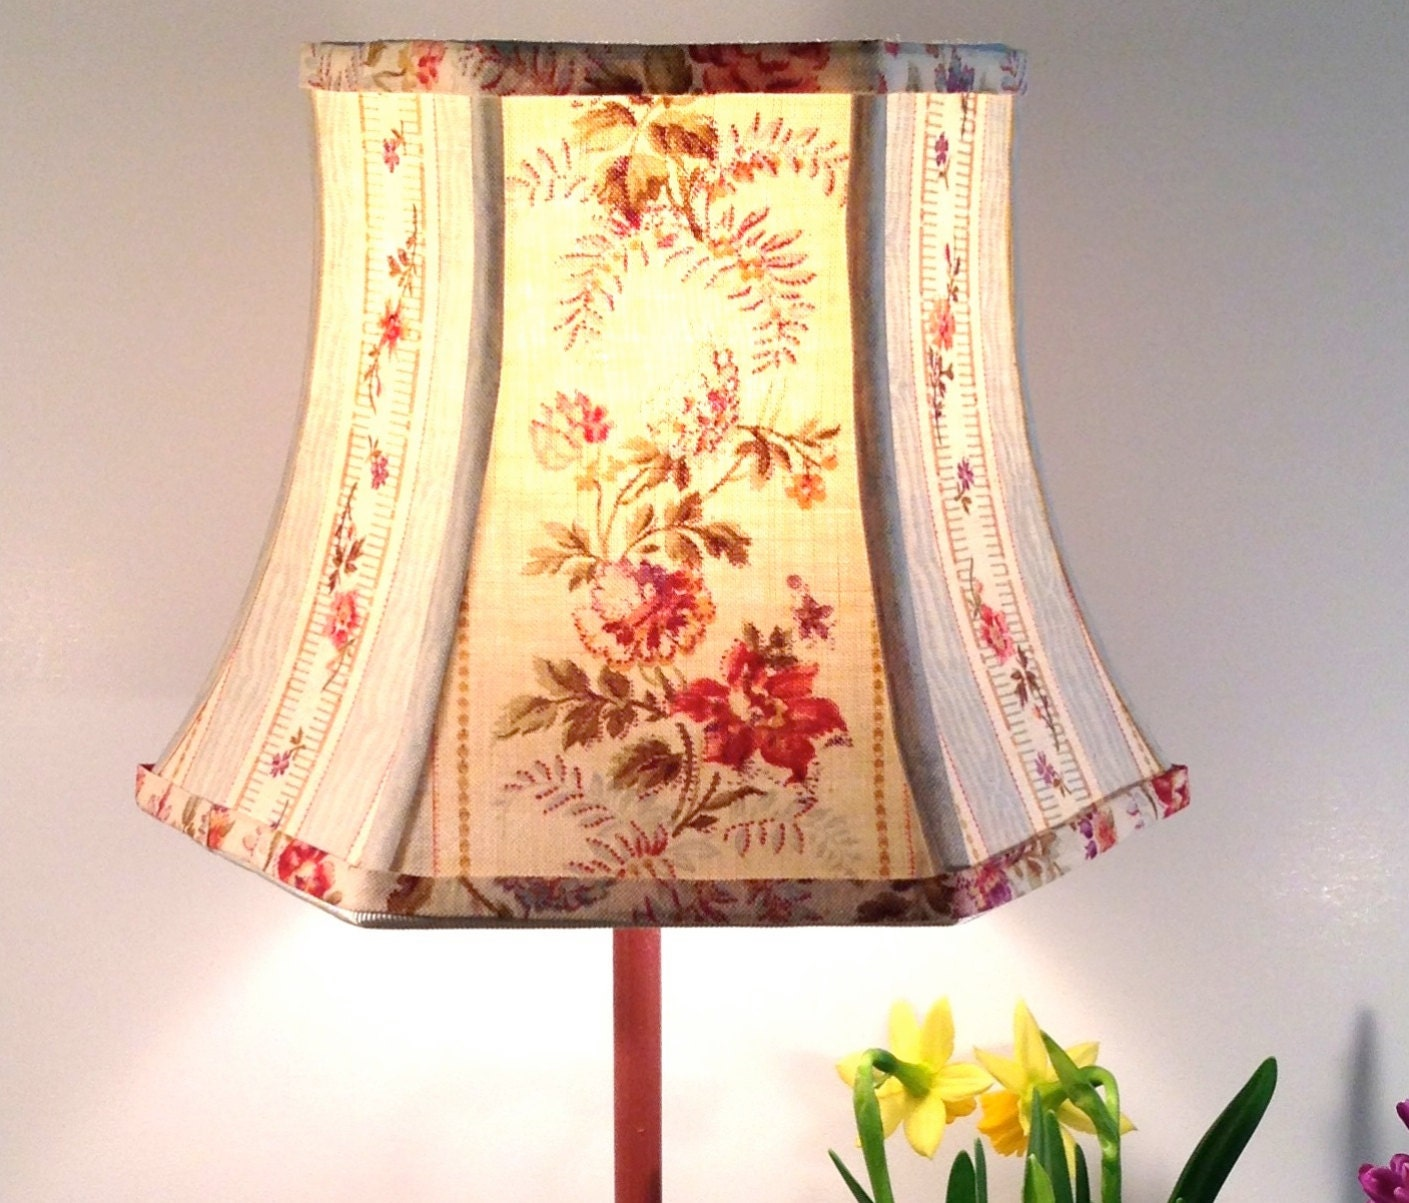 Cleveland Vintage Lighting Clip On Lampshade: Floral Lamp Shade French Lampshade Vintage Fabric 5x8x6 Clip